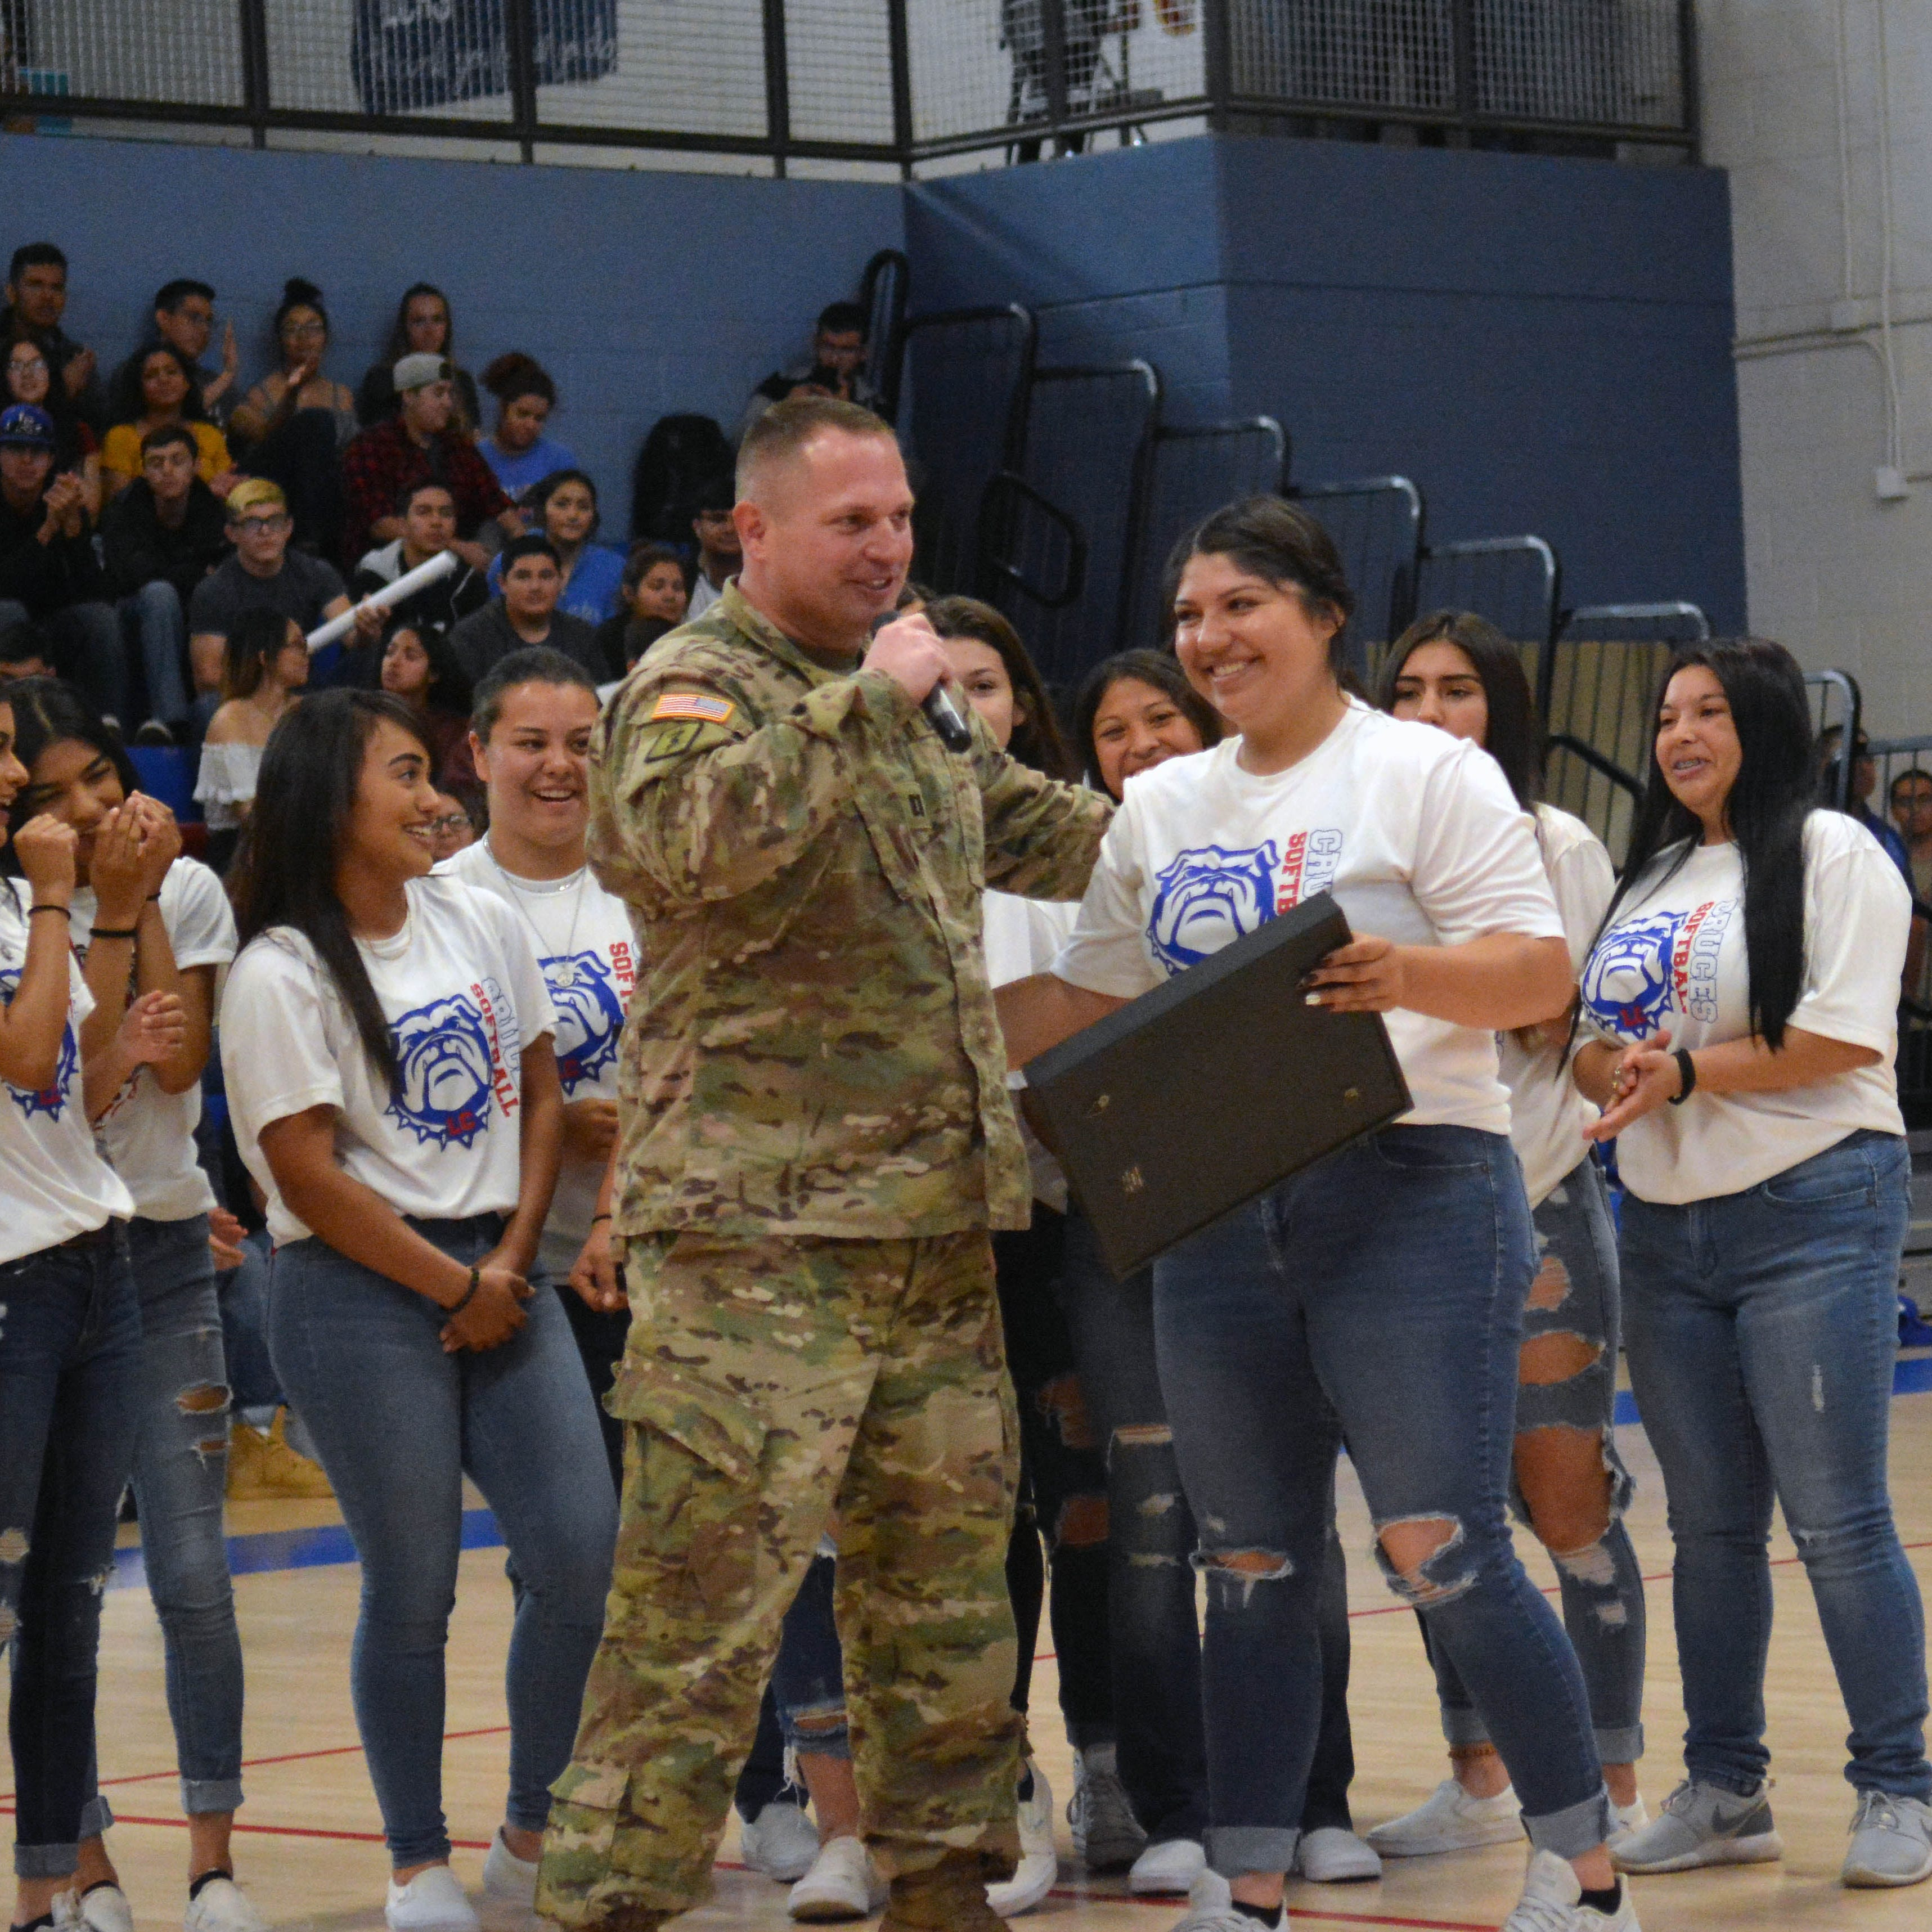 Army soldier inspired by Bulldawgs' state title run surprises team at assembly